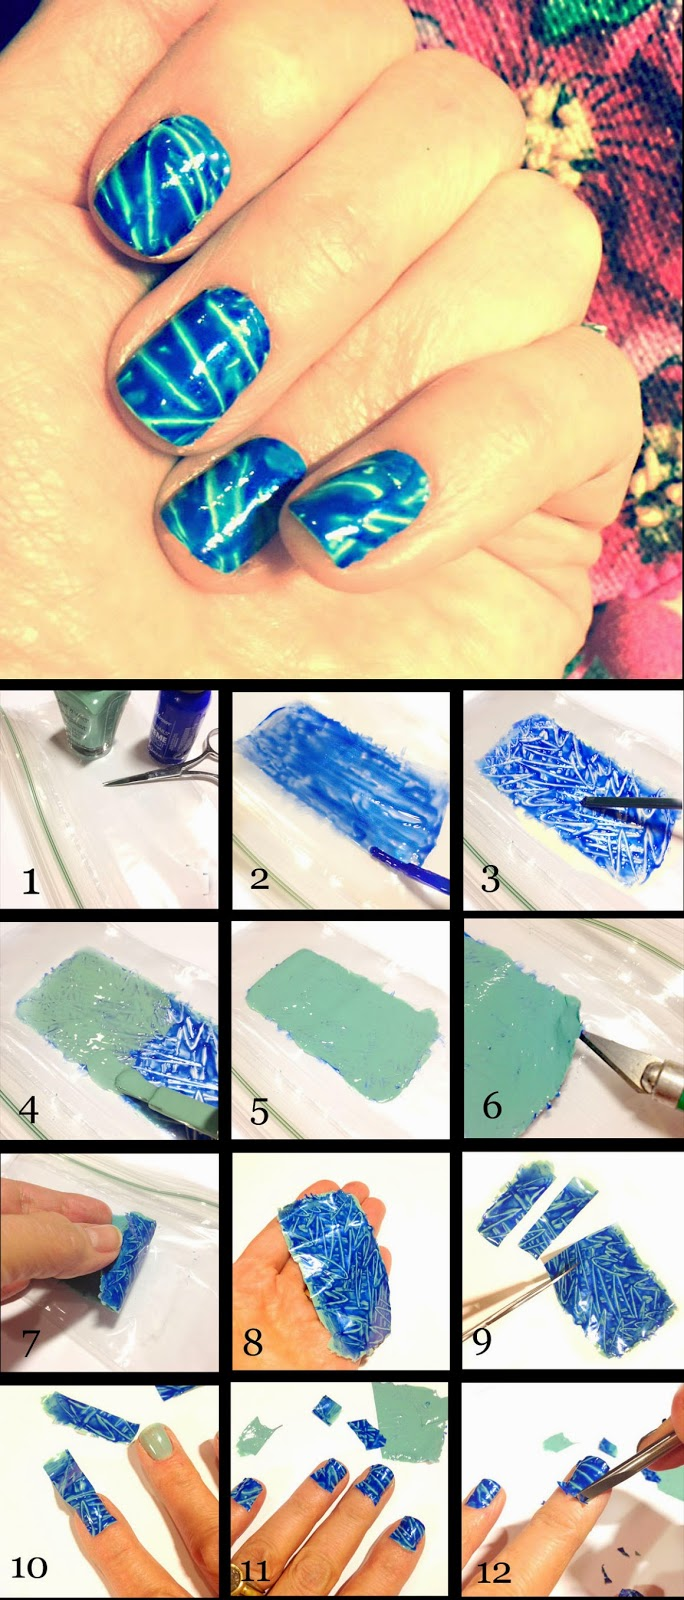 FACCI DESIGNS: Create Your Own Graffiti-Inspired Nail Decals